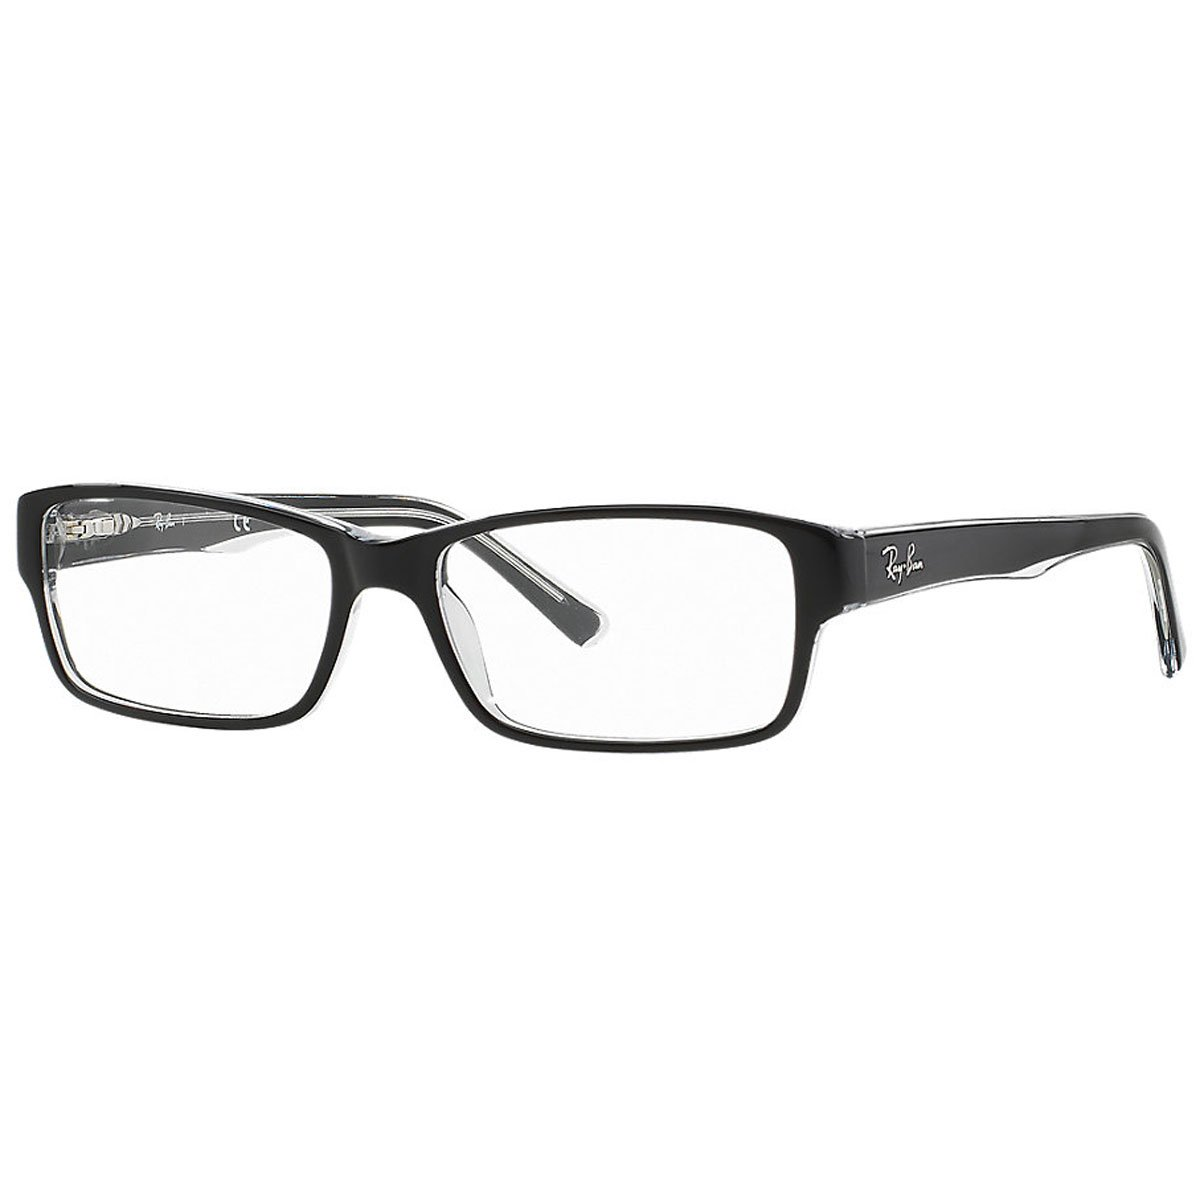 RAY BAN Authentic 5169 clear top black on transparent 2034 ,Designer Eyeglasses